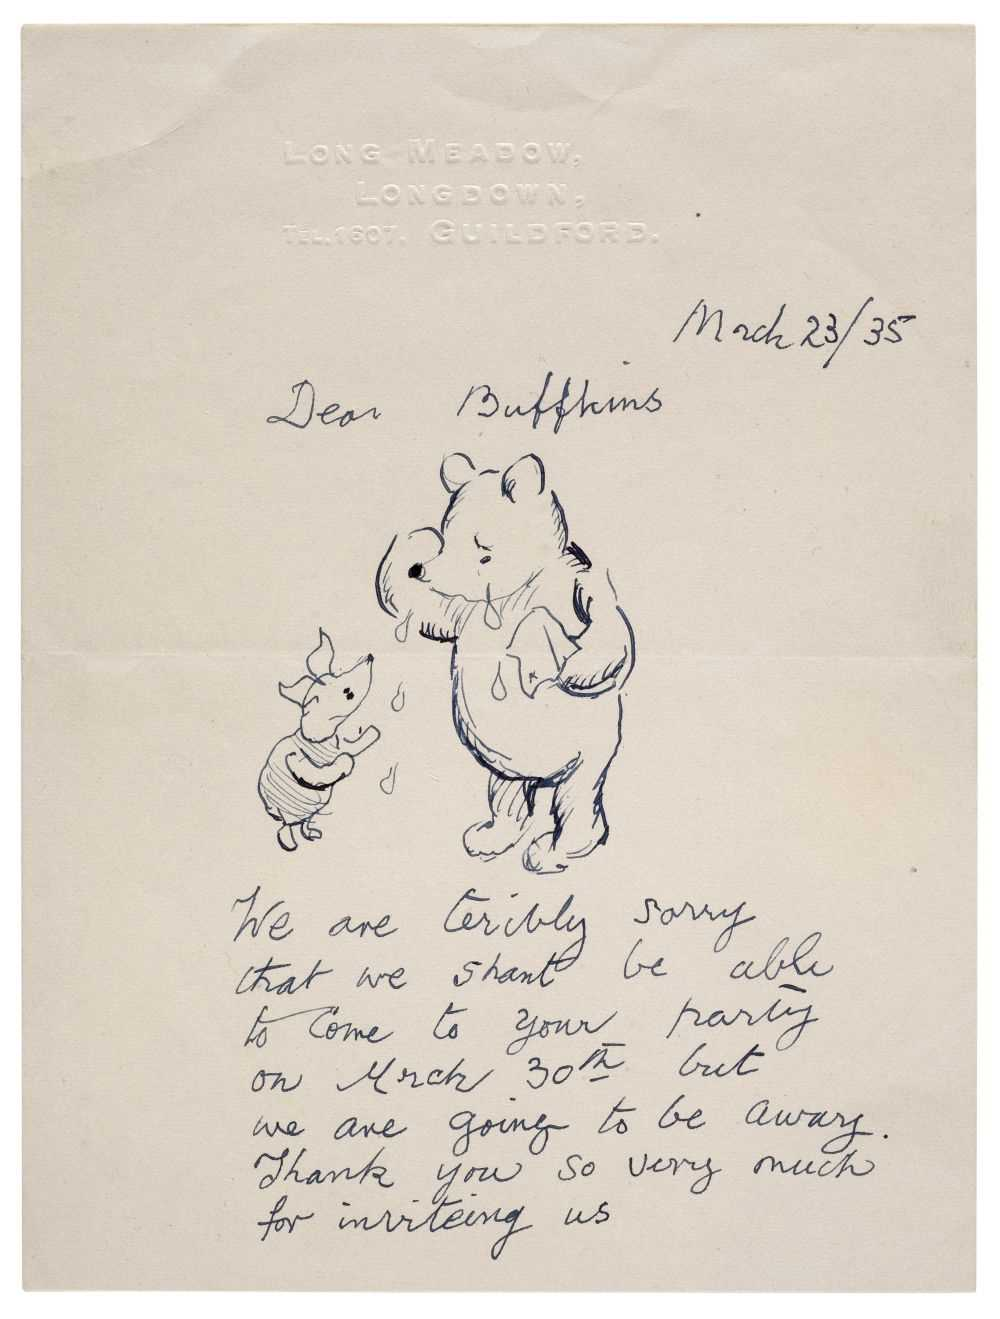 Lot 437-Shepard (Ernest Howard). A Winnie-the-Pooh illustrated letter, 23 March 1935